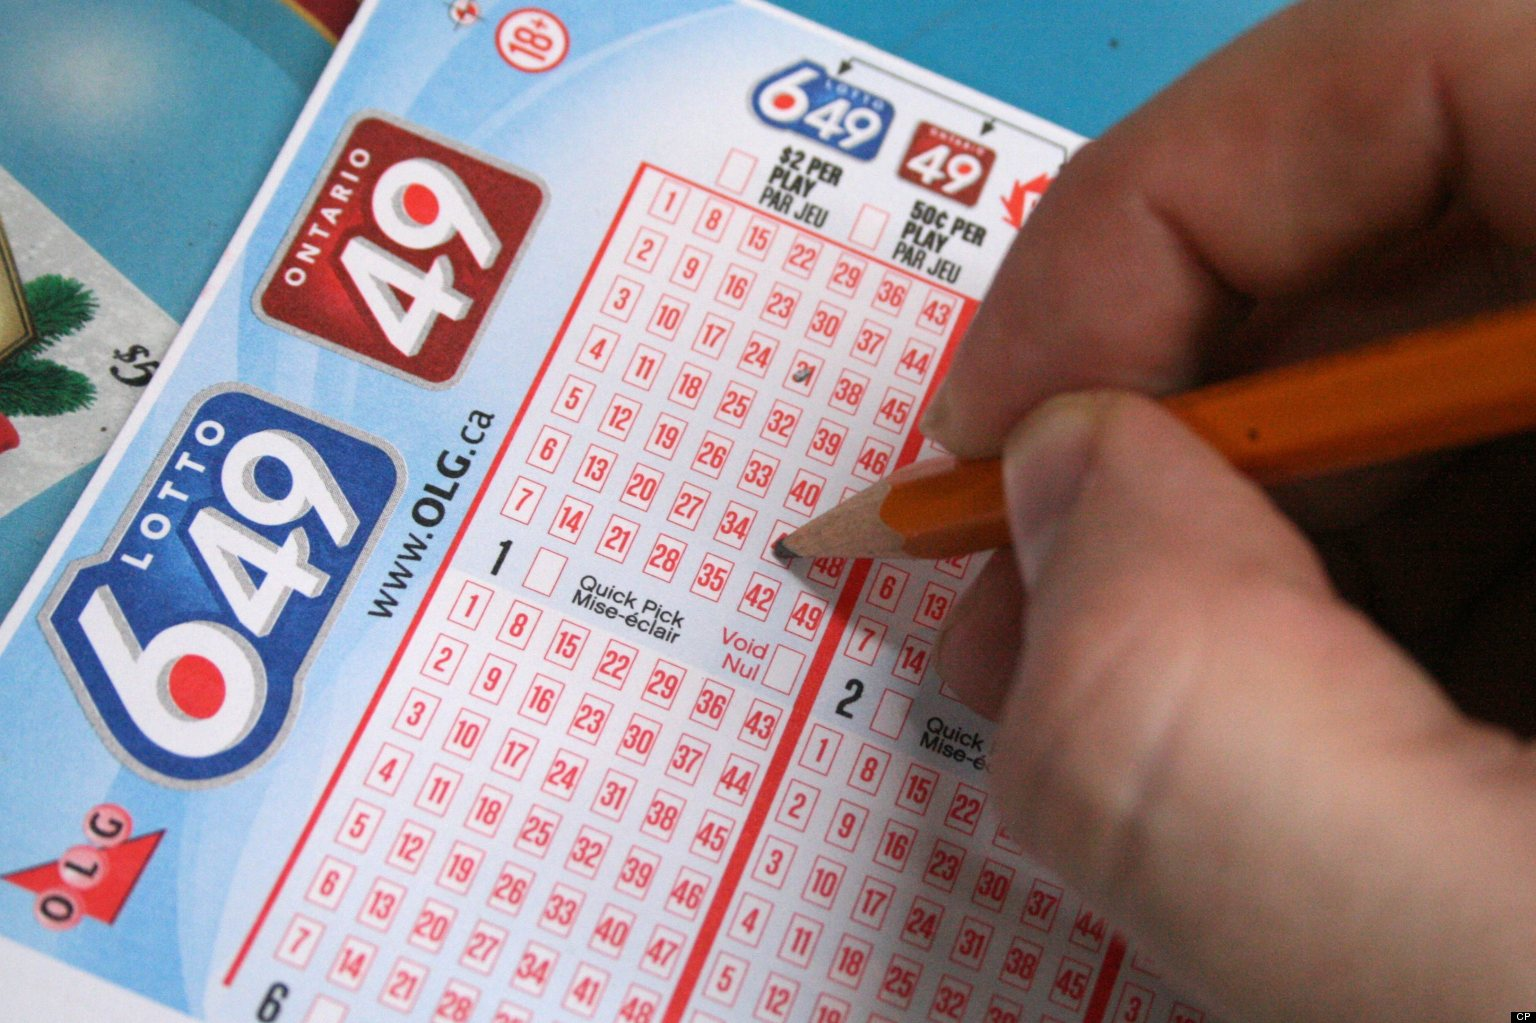 Someone in Cornwall has won big with Lotto 6/49